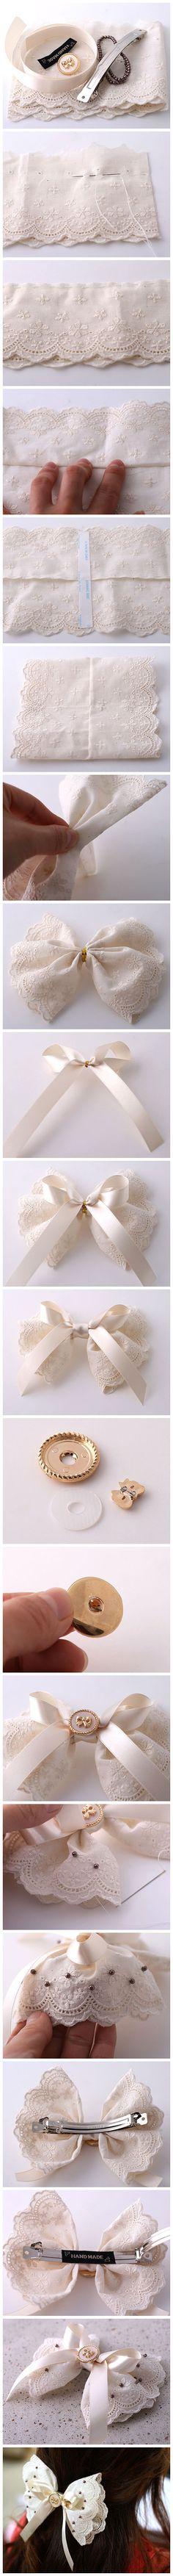 Cute hair bow DIY!